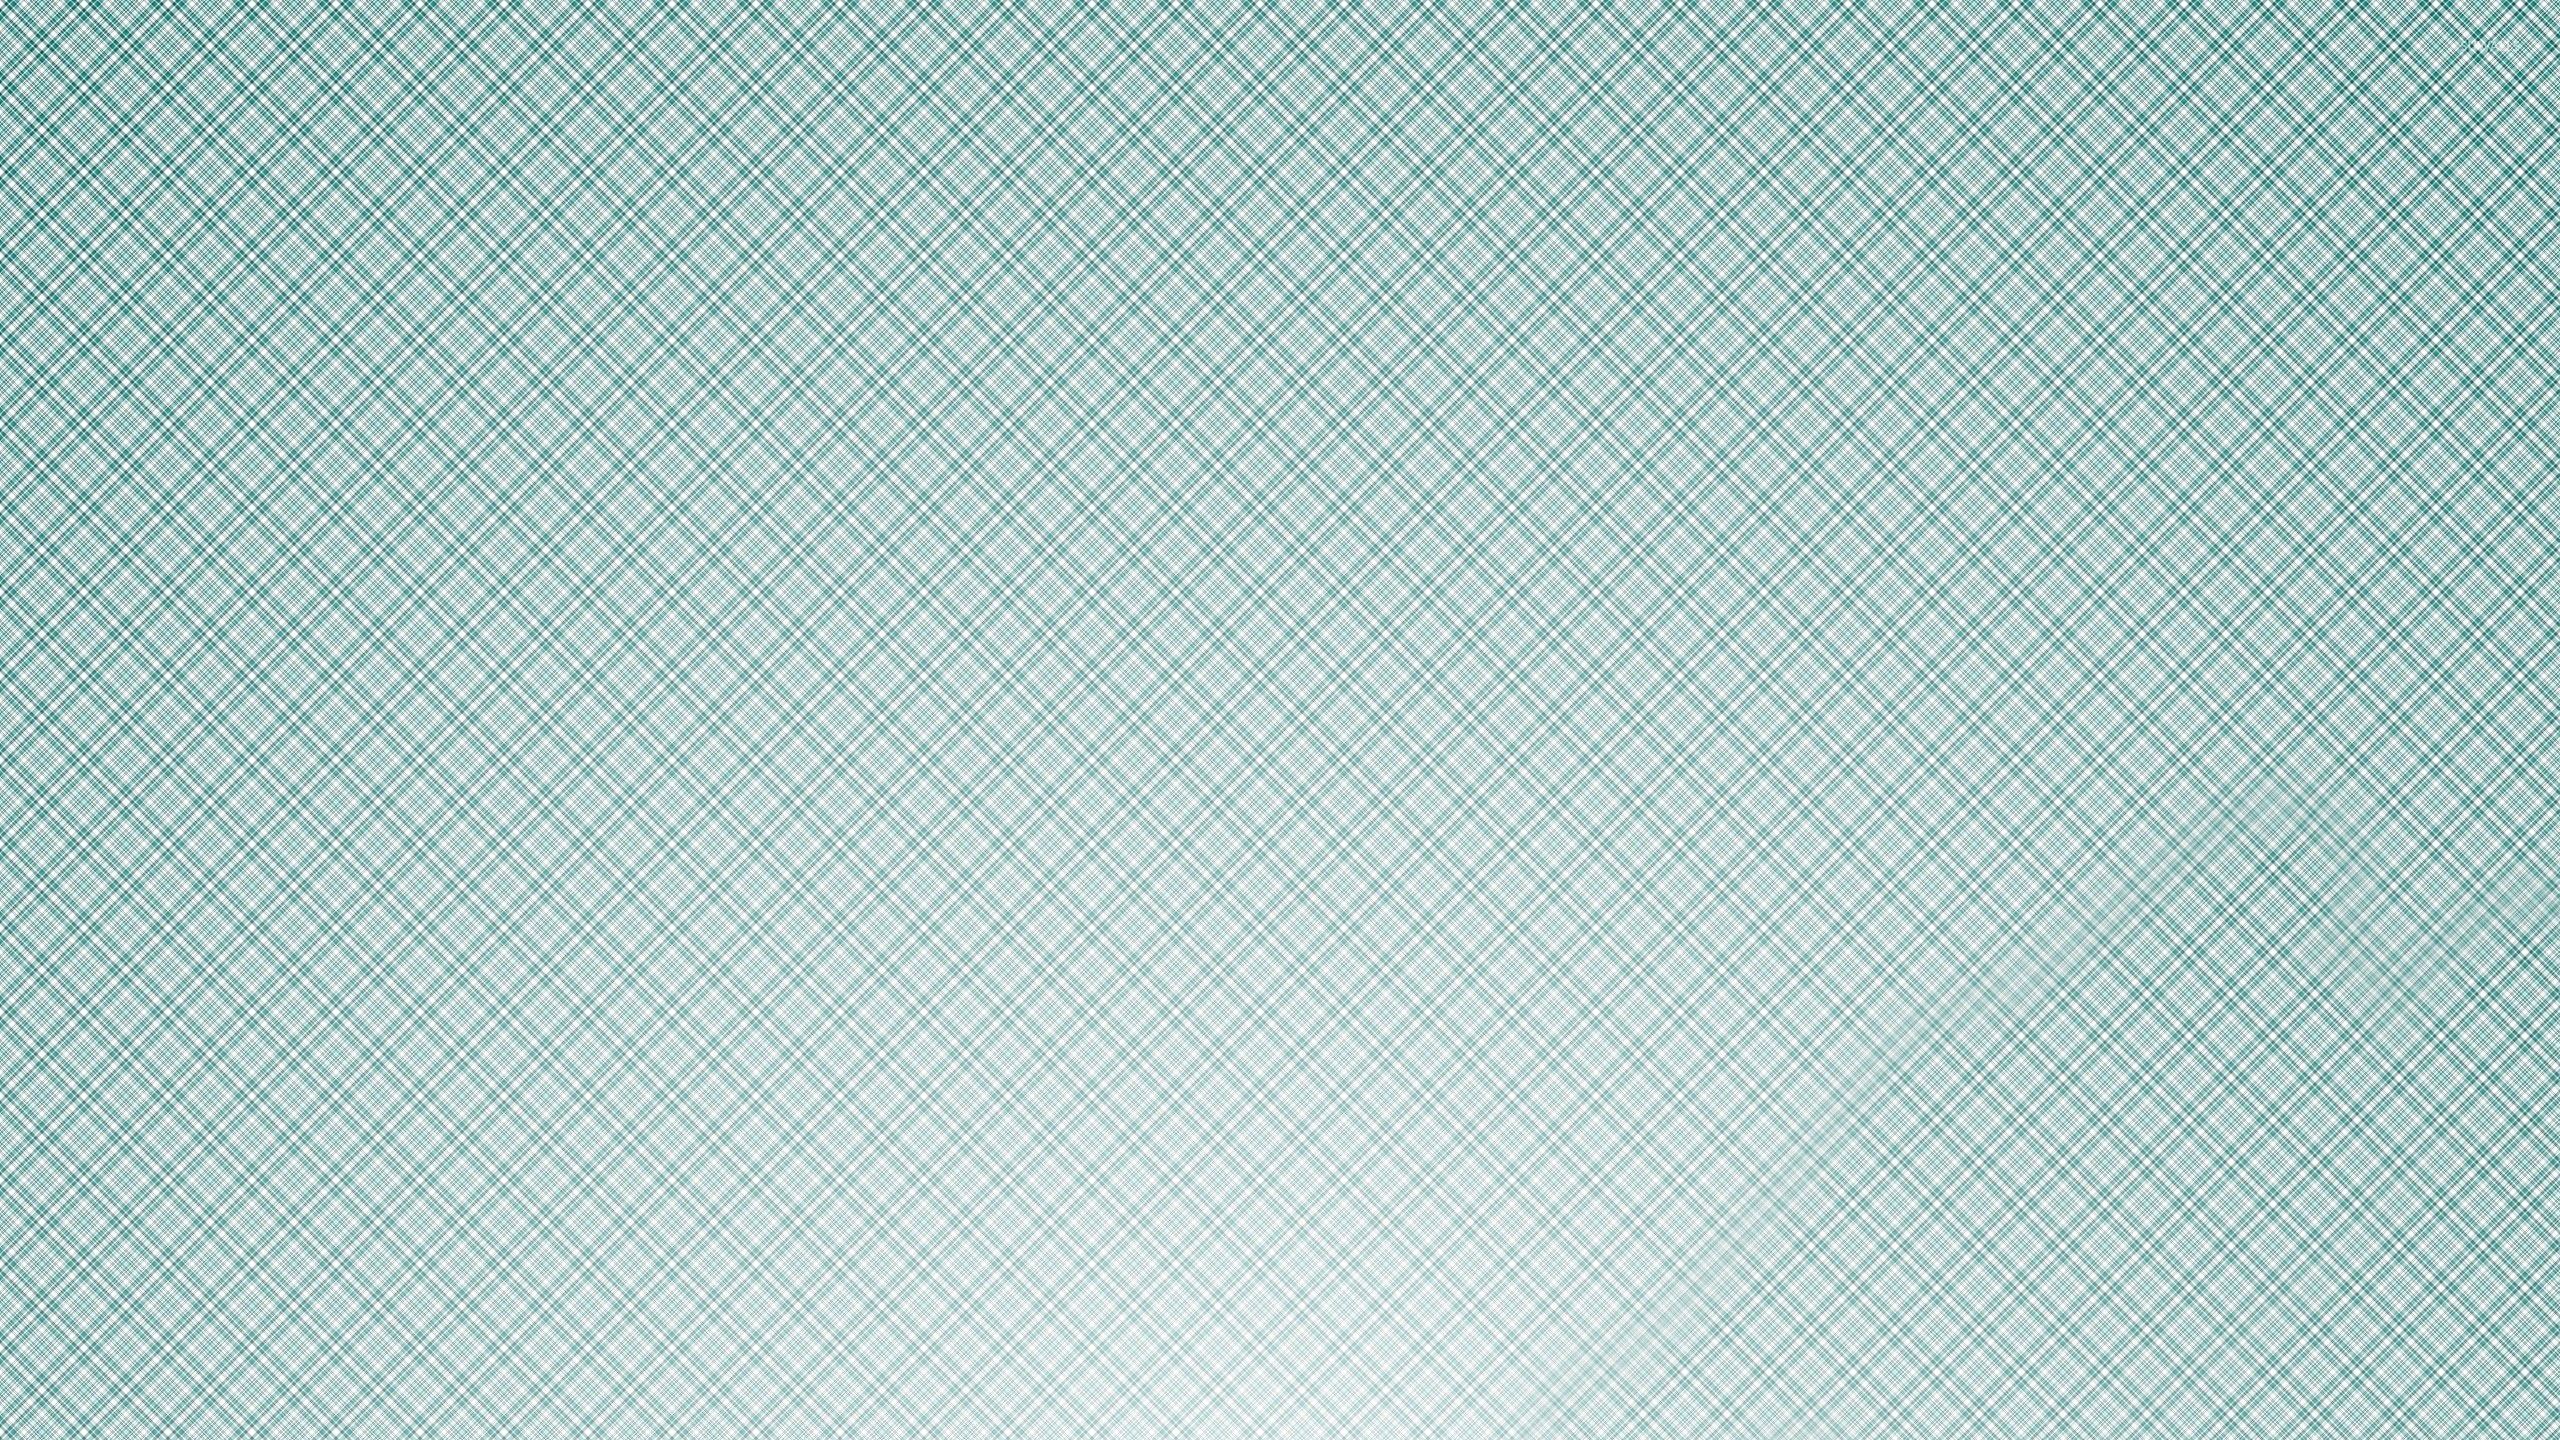 Blue Plaid Pattern Wallpaper Abstract Wallpapers 18602